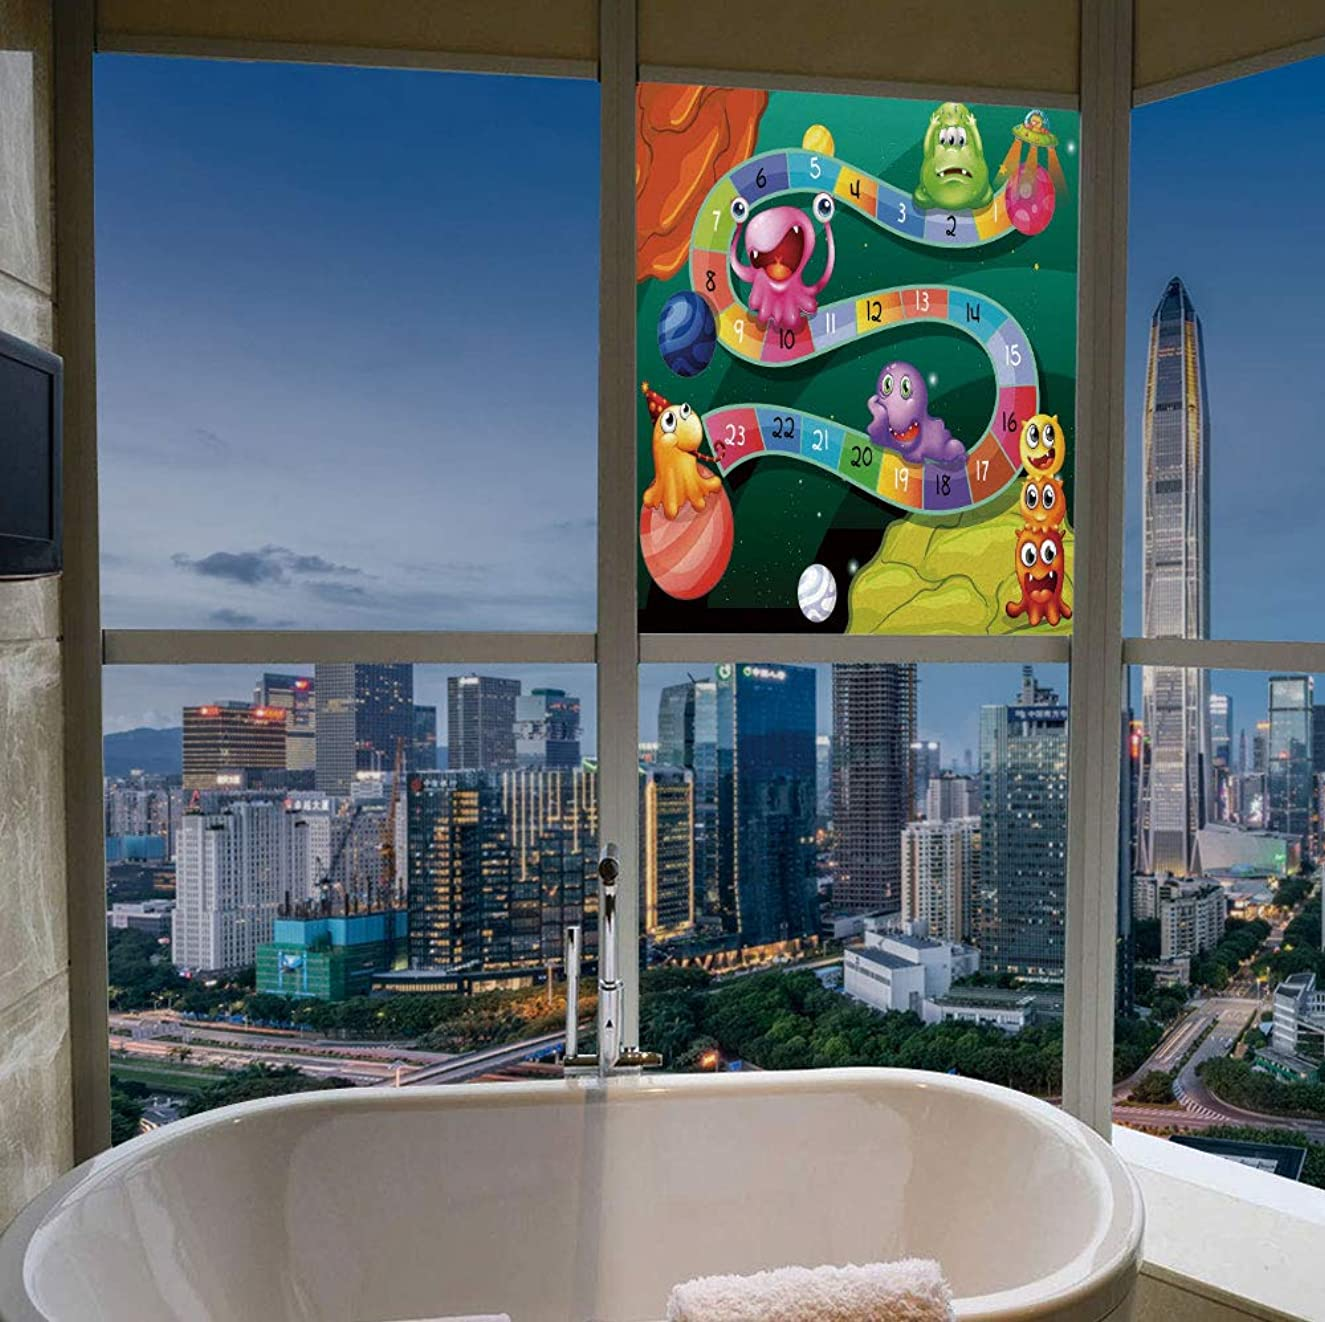 Control Heat and Anti UV Window Cling,Board Game,Reduce Heat, Glare and Block Out Harmful UV Rays,Colorful Cartoon Style Cute Aliens with Numbers in,17''x24''